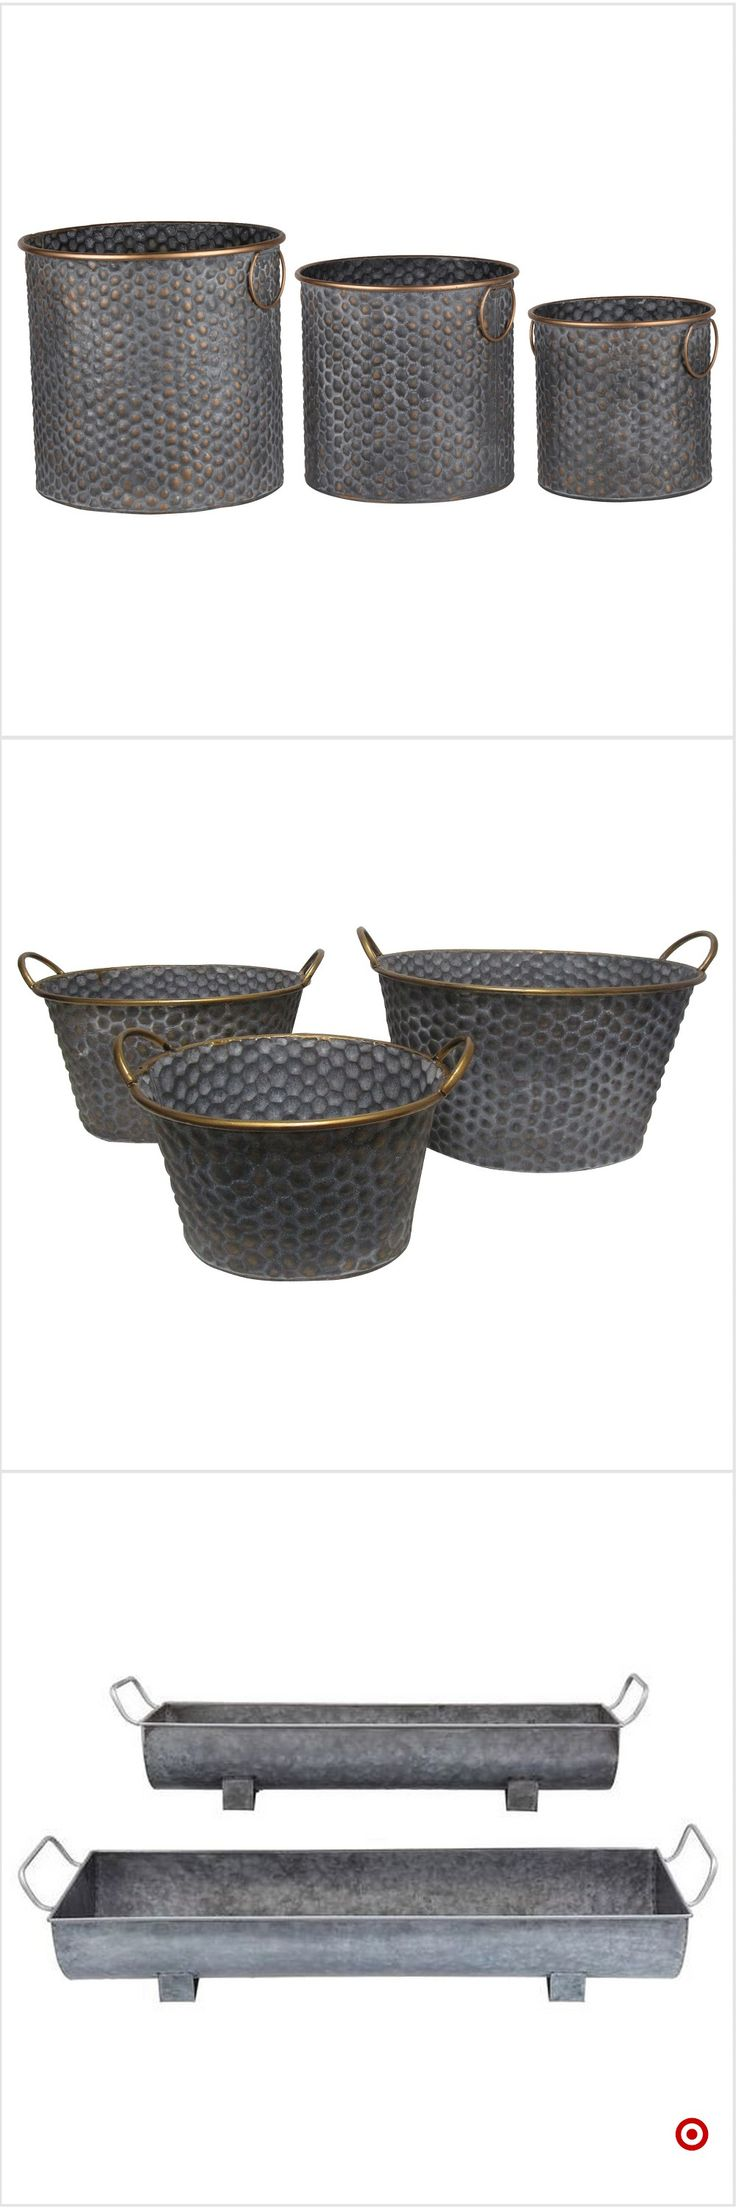 Shop Target for planters you will love at great low prices. Free shipping on orders of $35+ or free same-day pick-up in store. http://www.wartalooza.com/treatments/dr-scholls-wart-remover-review